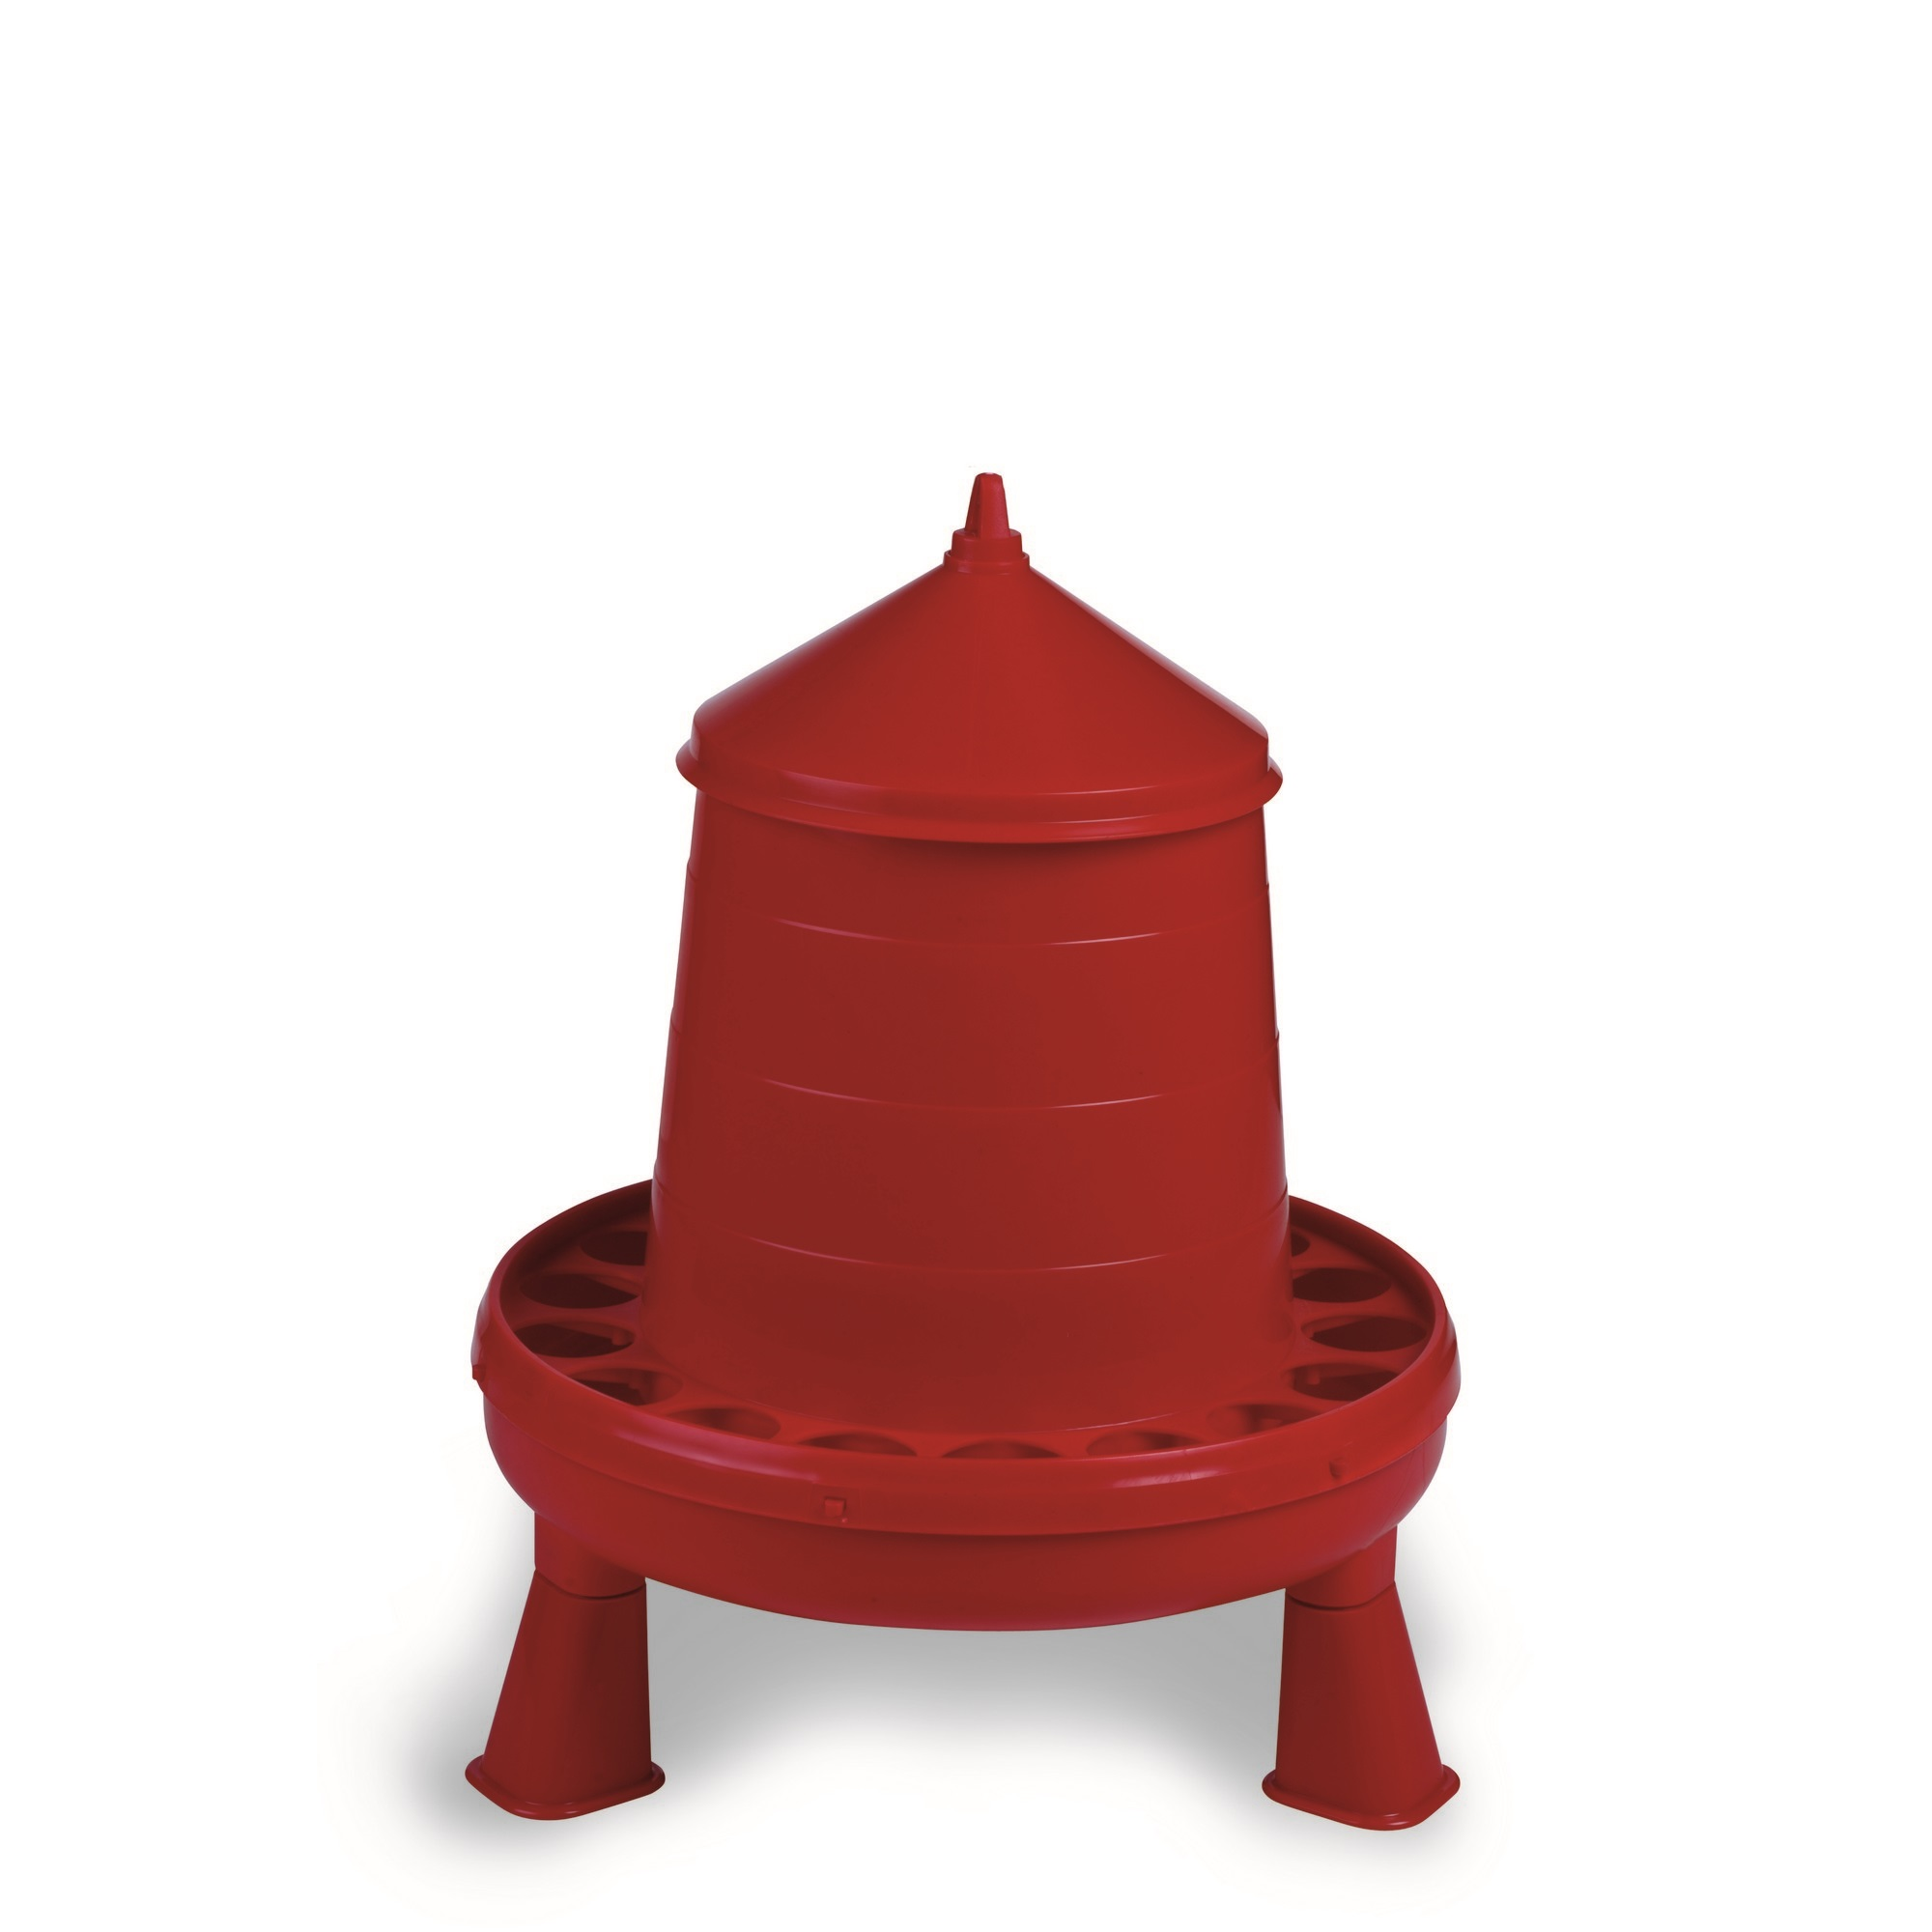 Gaun-Plastic-Poultry-Feeder-With-Legs-TL1484